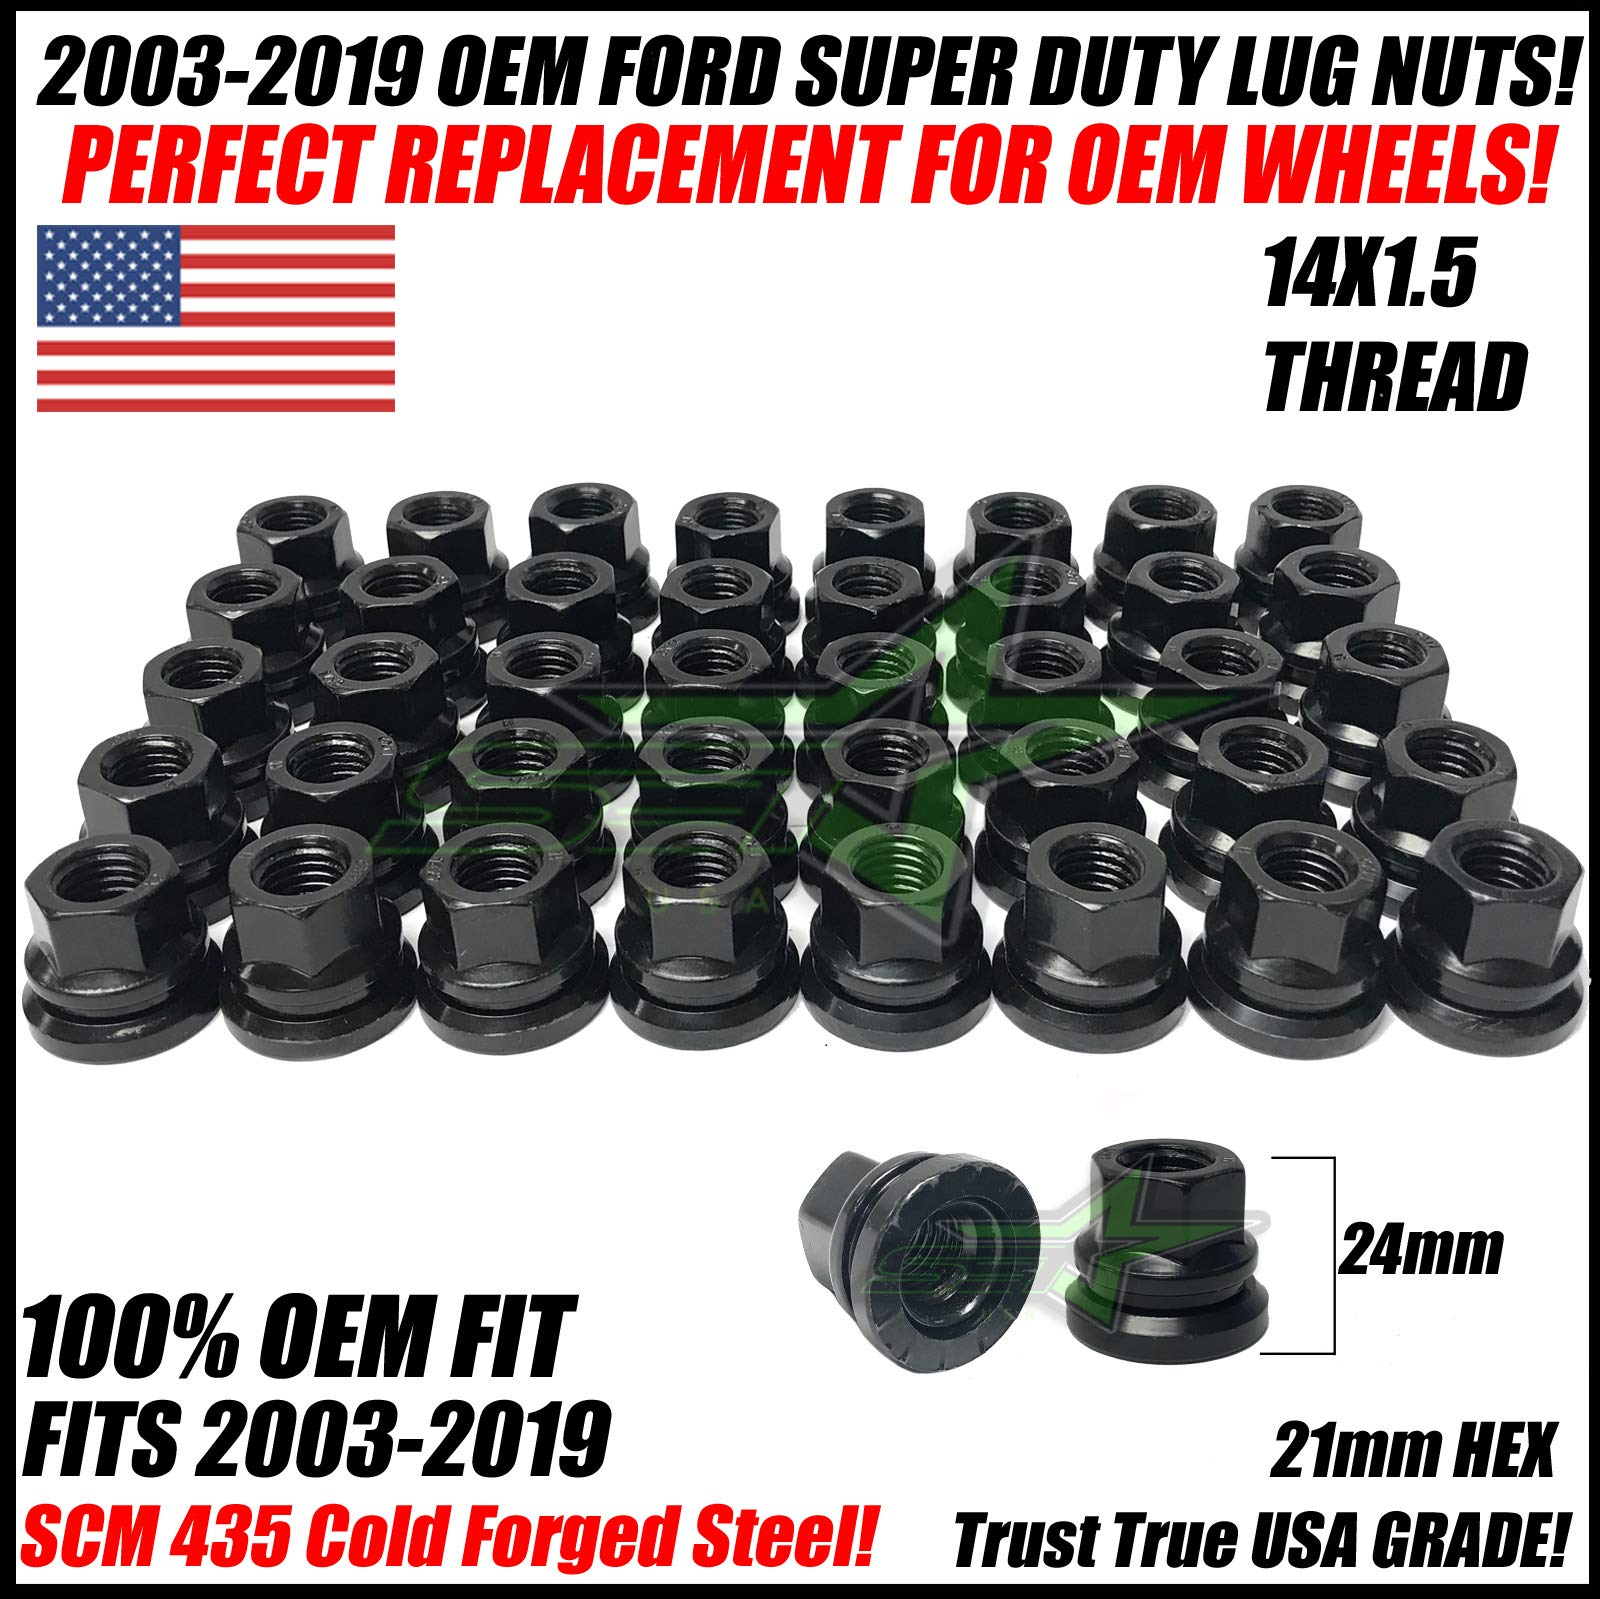 SET Group USA 32Pc Factory OEM Lug Nuts 14x1.5 Compatible with Ford F-250 F-350 Excursion Super Duty 2003-2019